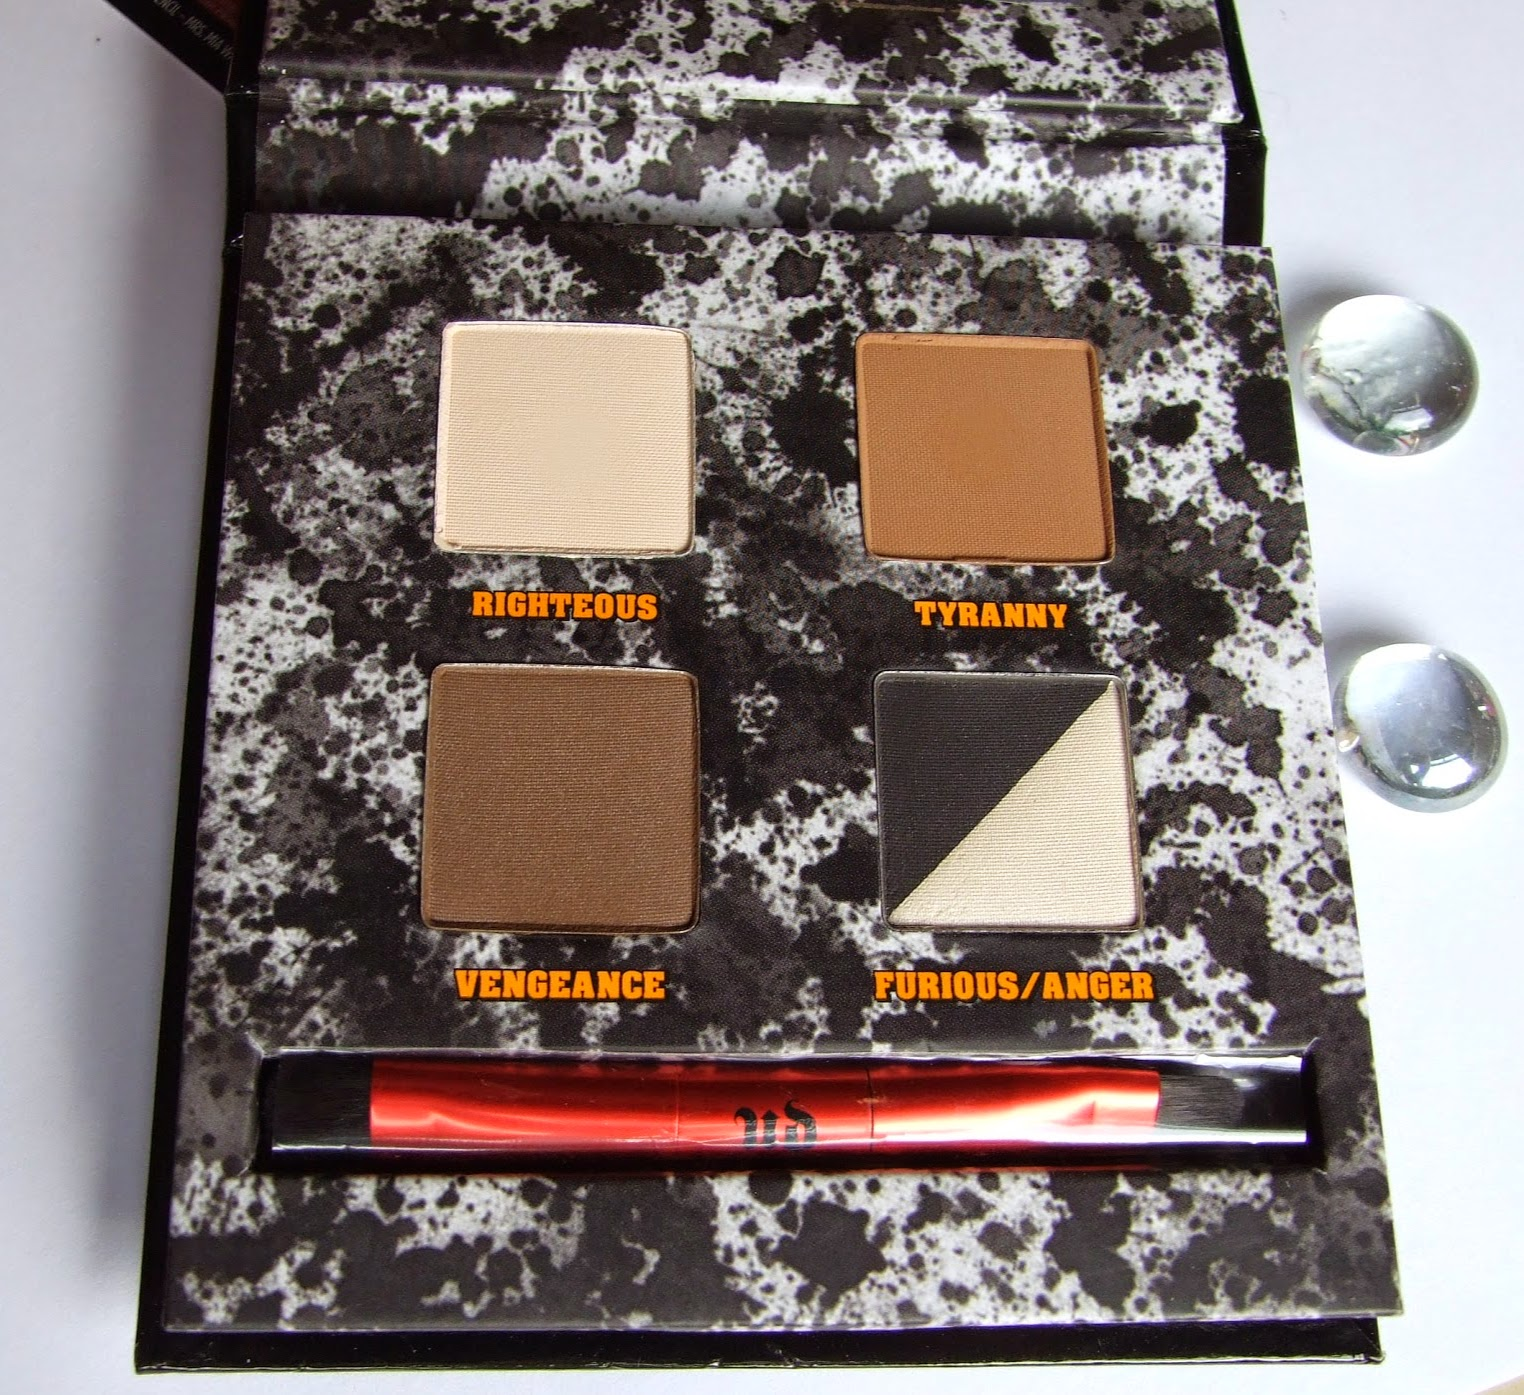 Urban decay pulp fiction Eye-shadow palette collection swatches review